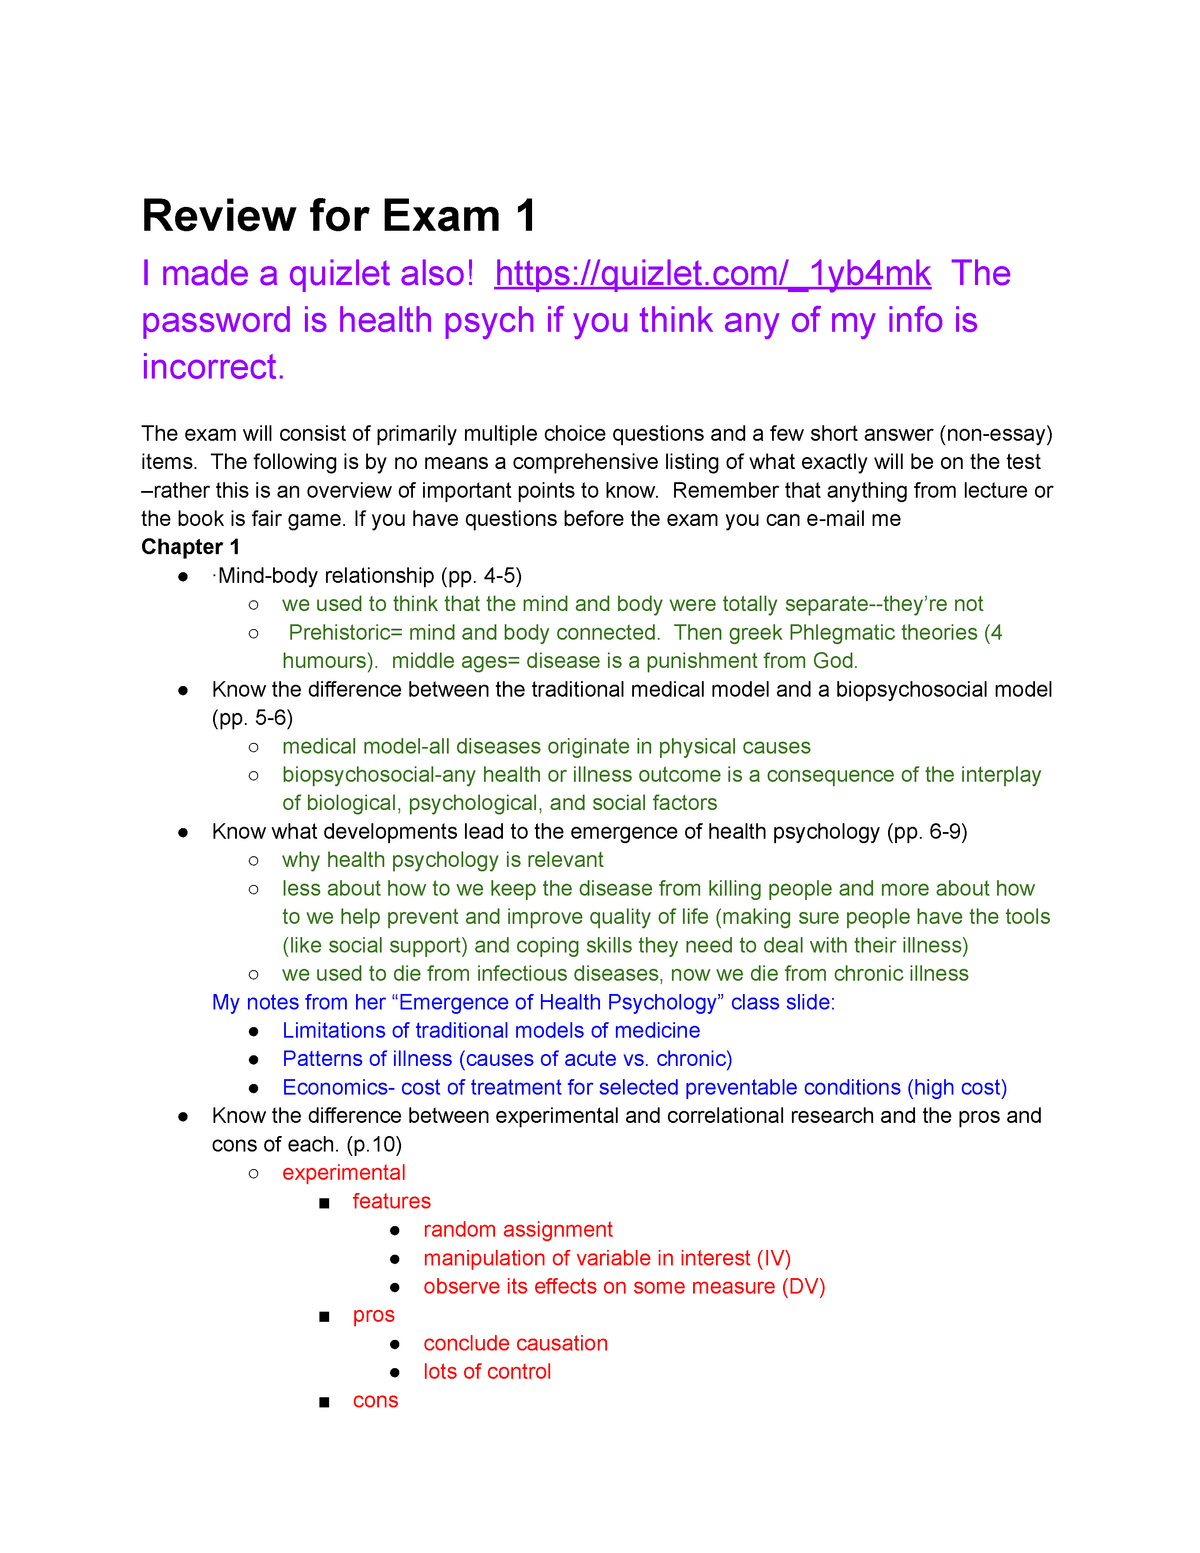 Health Psychology Exam 1 Review Guide - PSYCH 356 - StuDocu